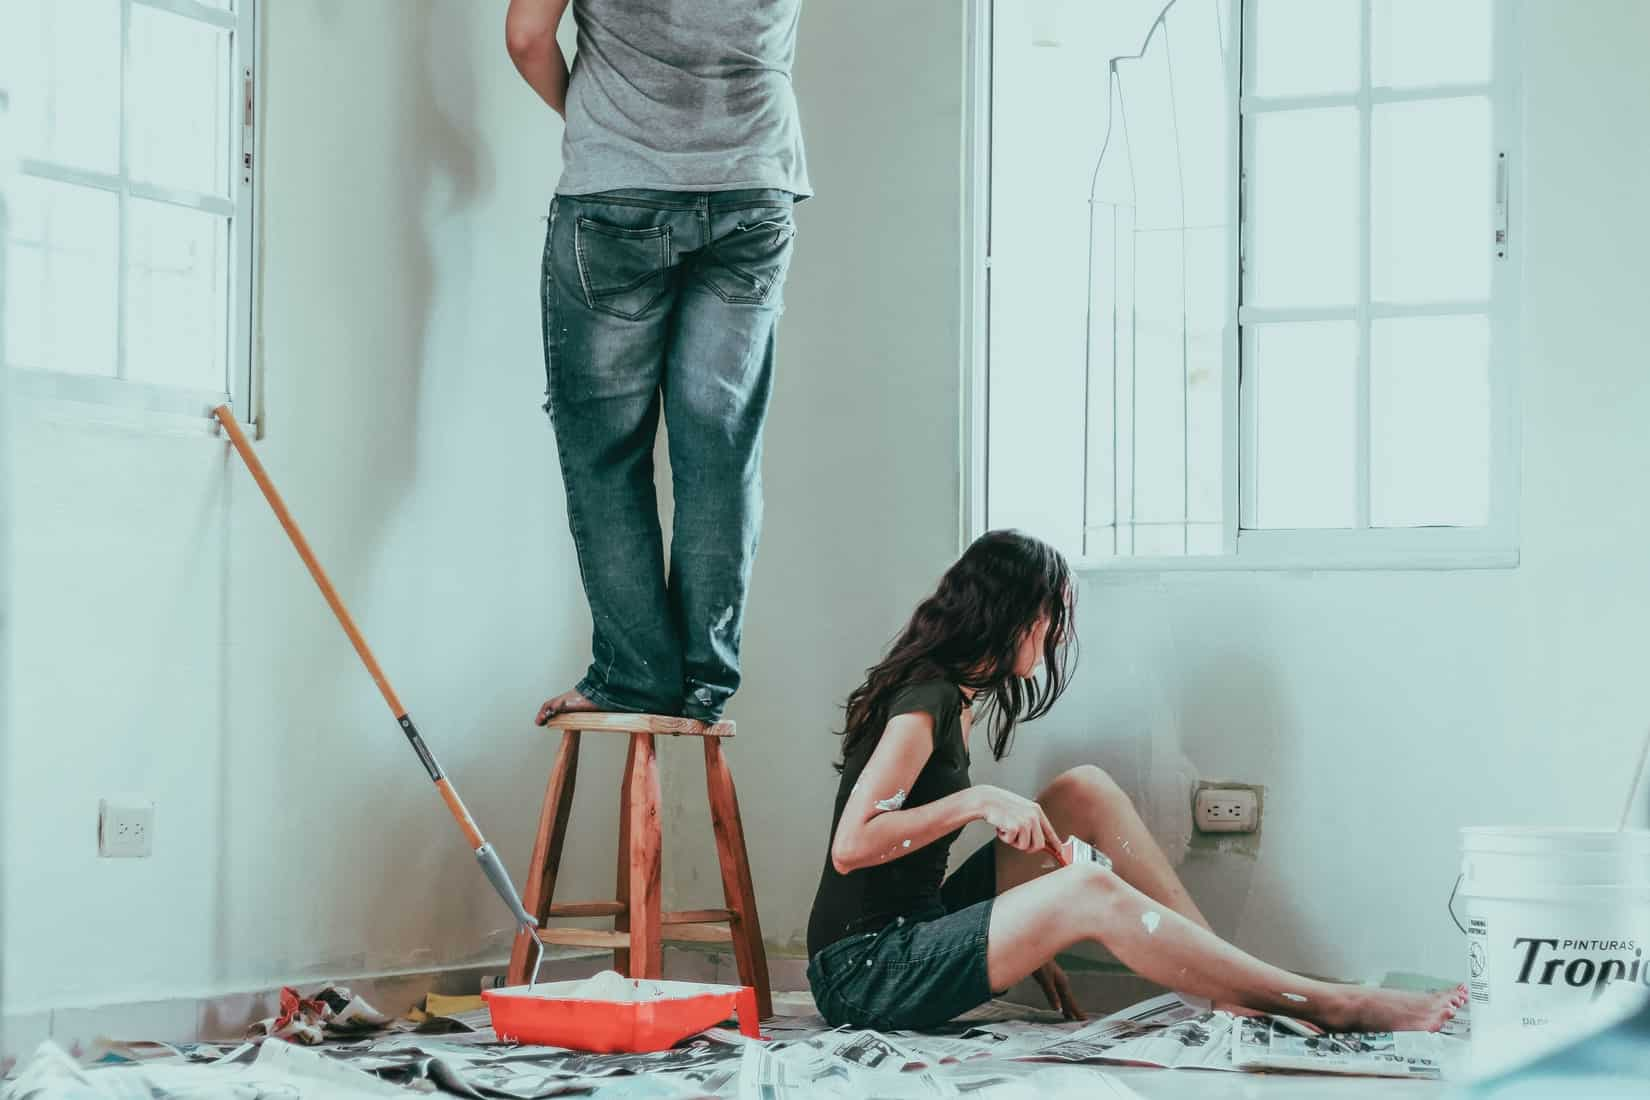 Man and woman decorating a room